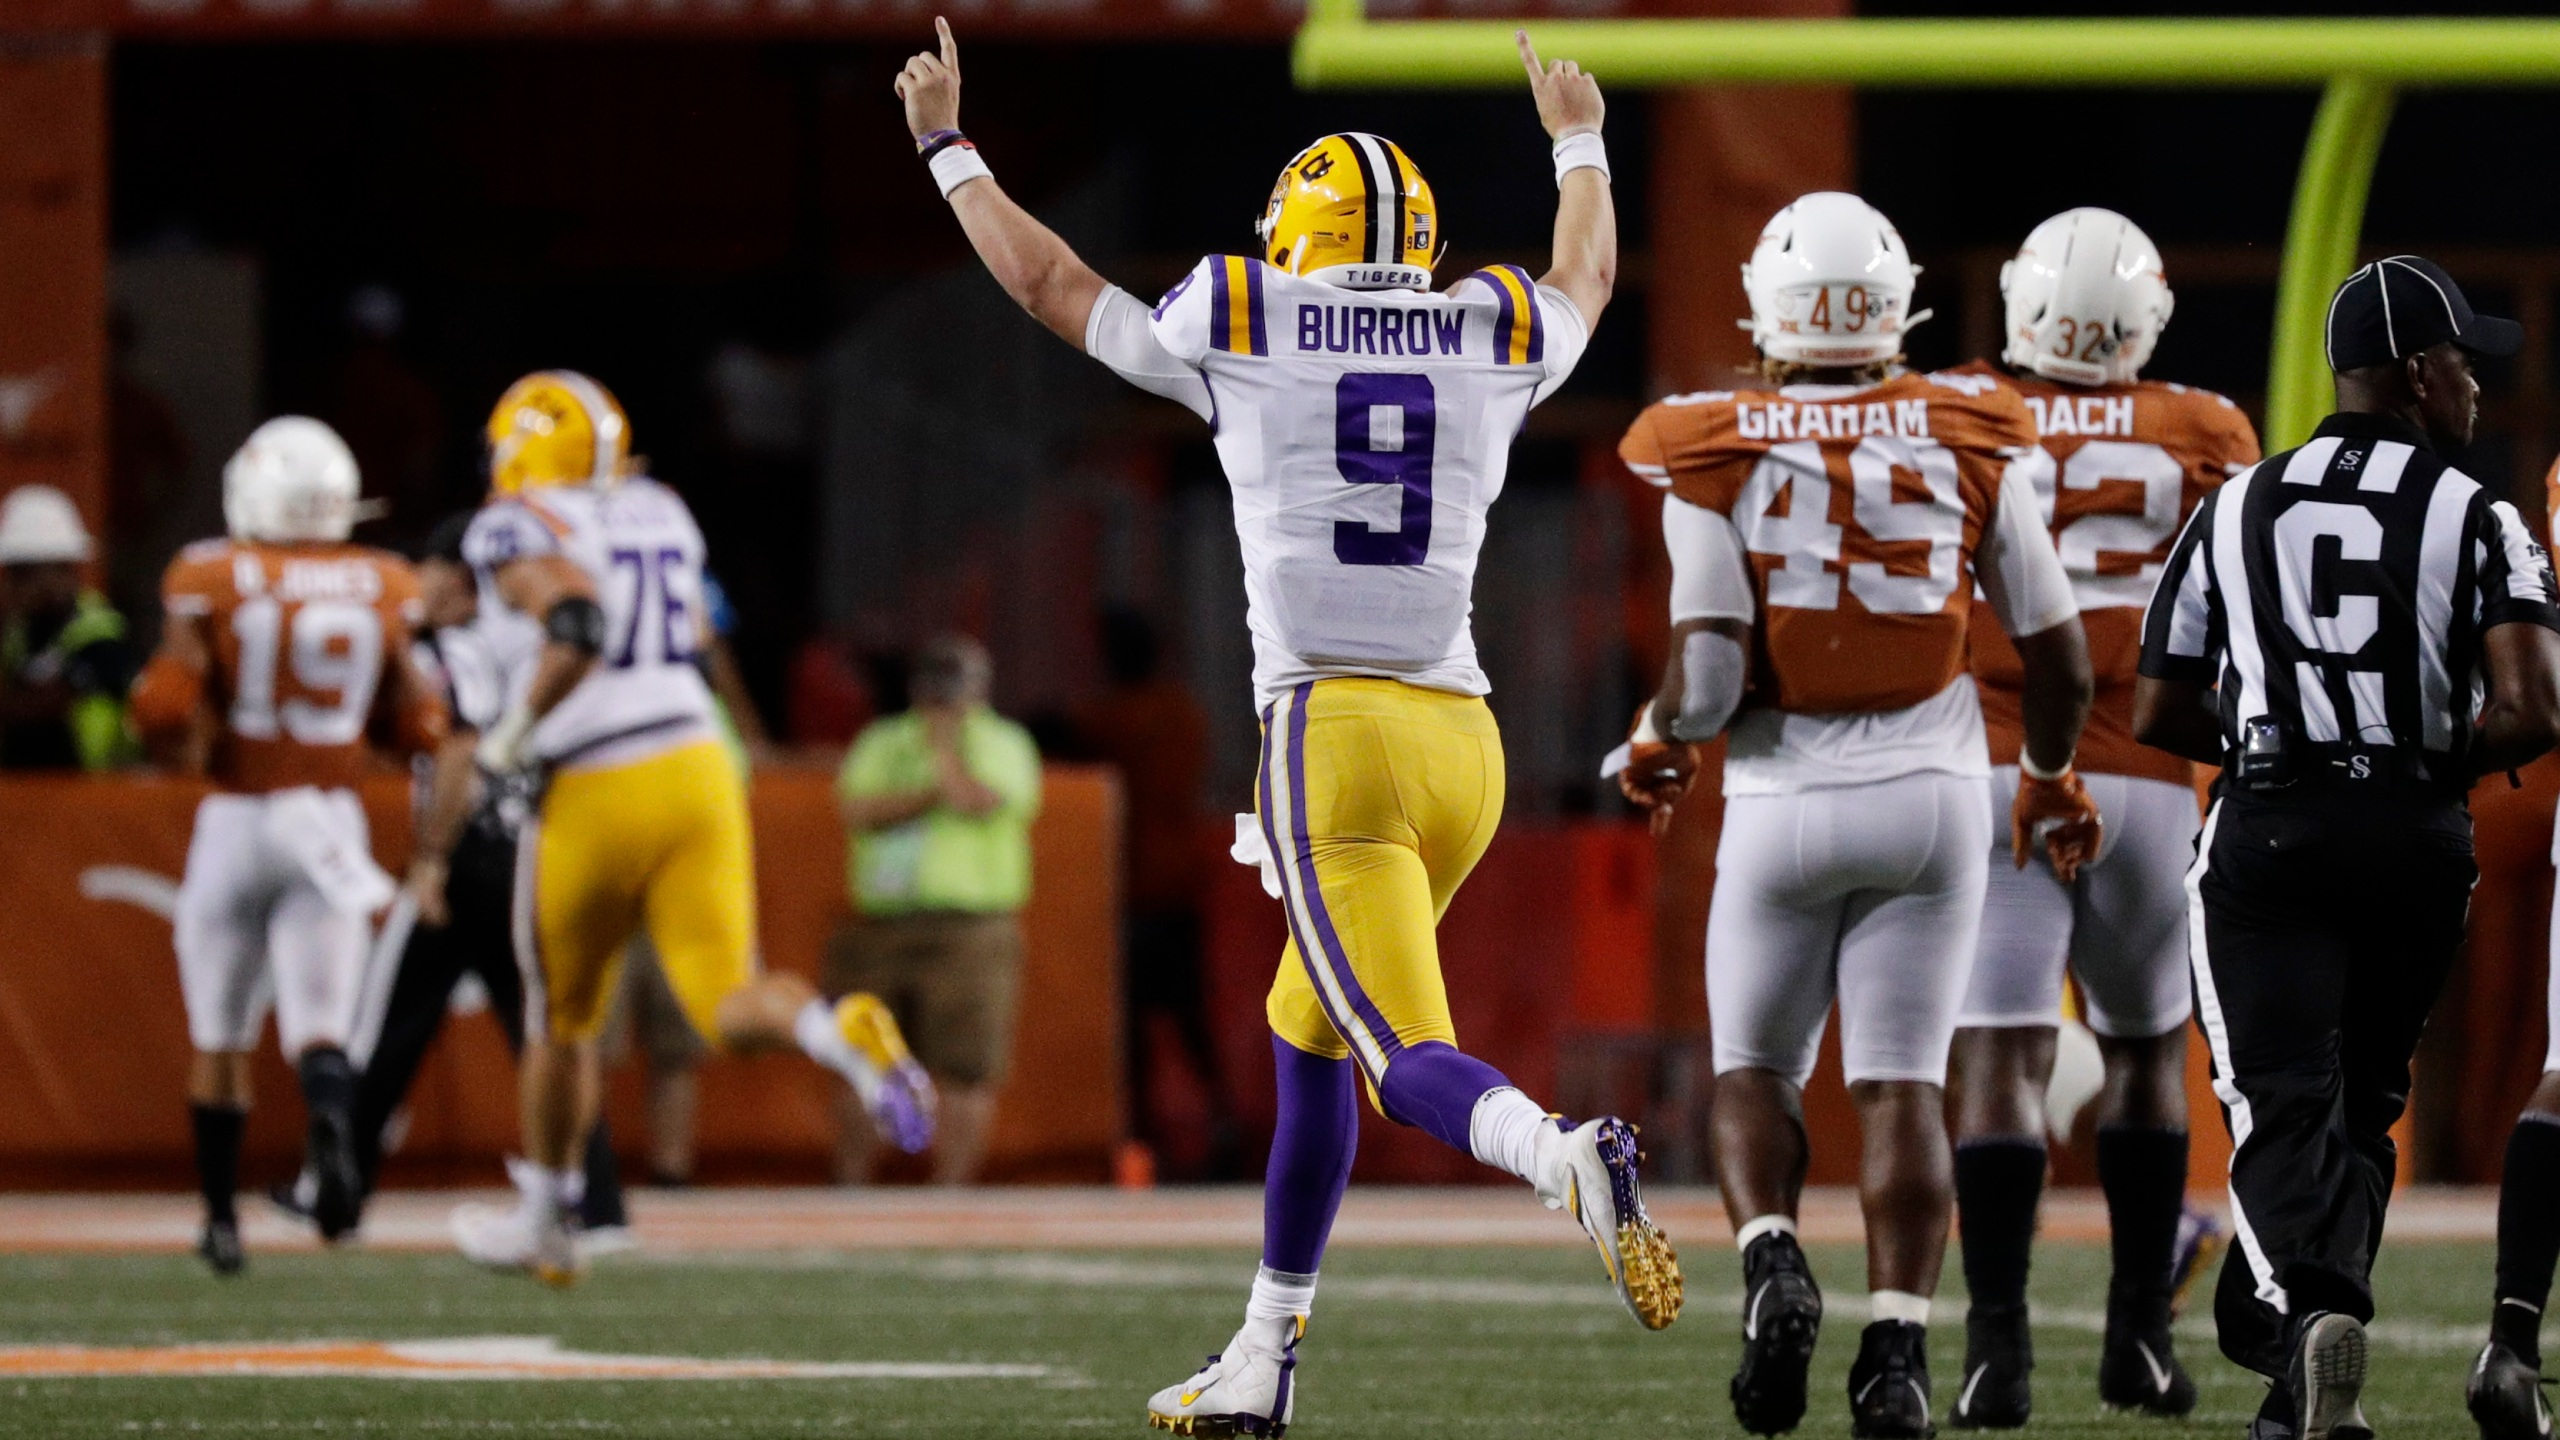 Burrow's 4 TD passes lead LSU over Texas 45-38 – WKRG News 5